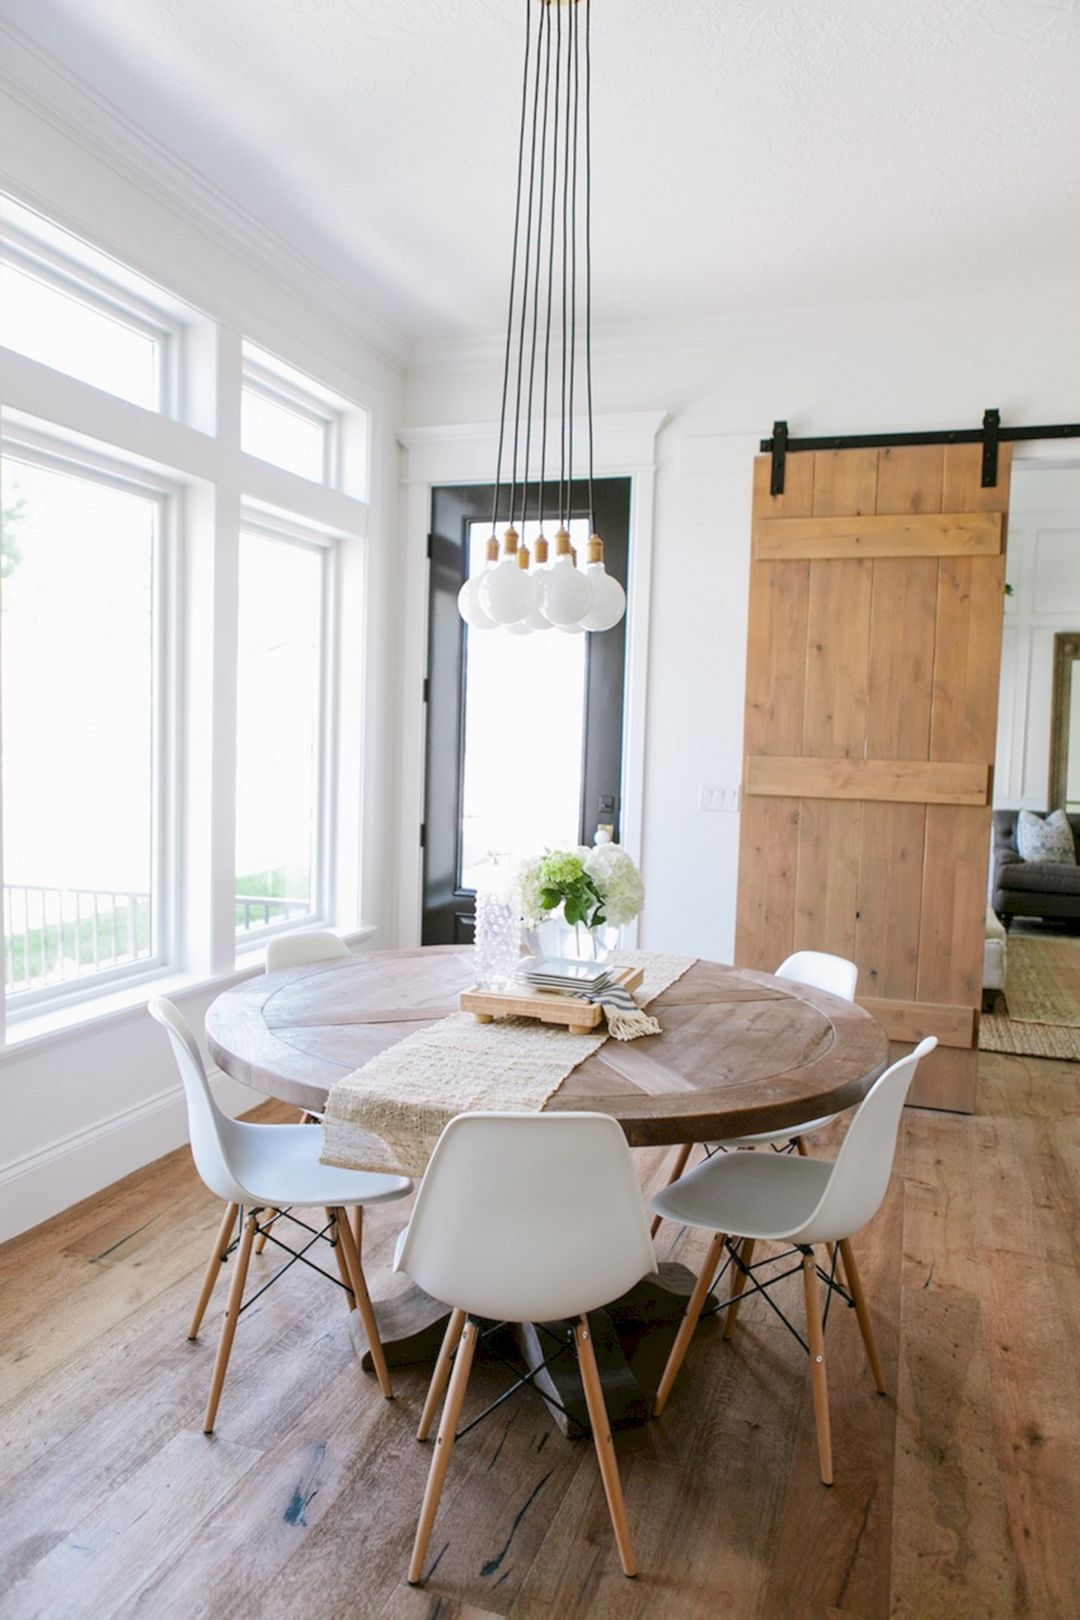 Best 75 Simple And Minimalist Dining Table Decor Ideas Http Goodsgn Com Kitchen 75 Simple And Minimalis Apartment Dining Retro Dining Rooms Round Dining Room